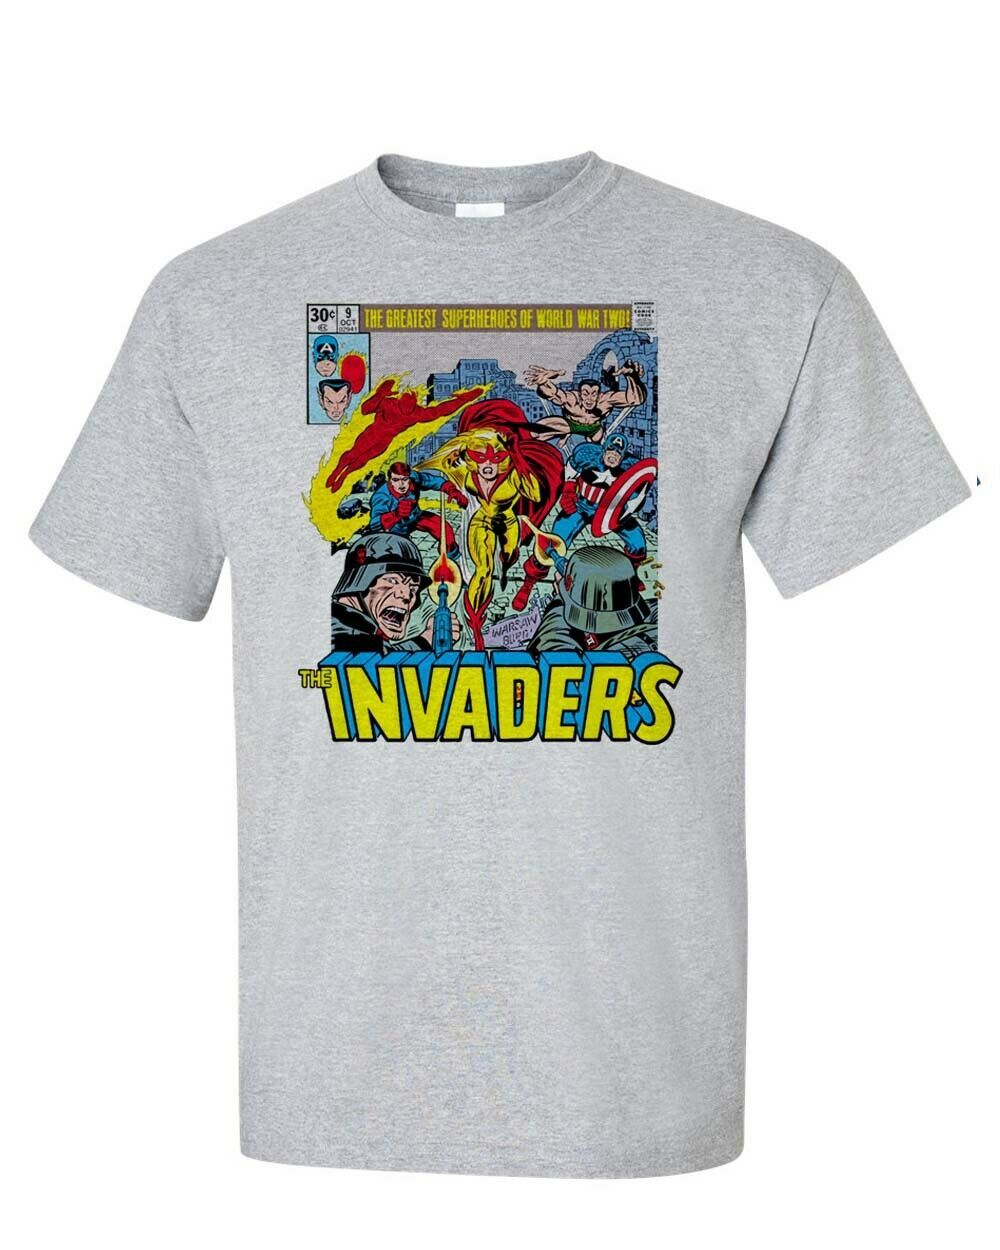 The Invaders T-Shirt Spit Fire Bucky Sub Mariner 1970s comic books graphic tee